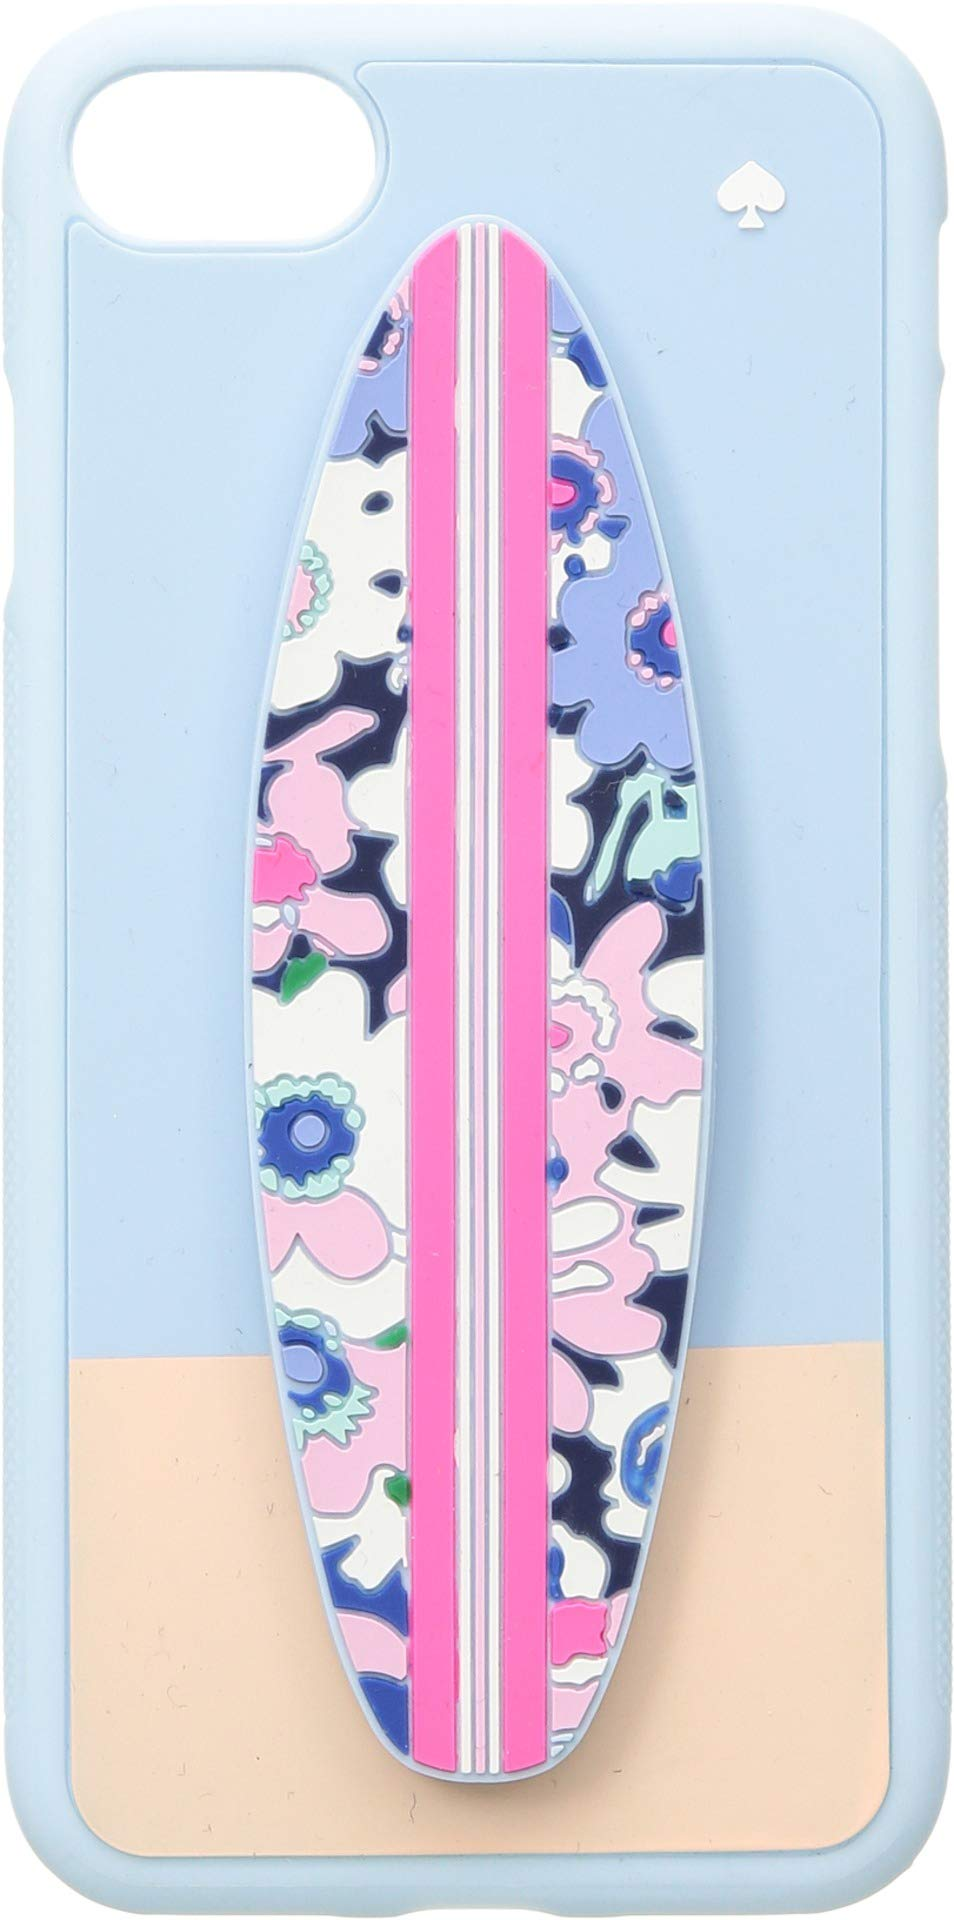 Kate Spade New York Women's Silicone Surfboard Stand Phone Case for iPhone 8 Blue Multi One Size